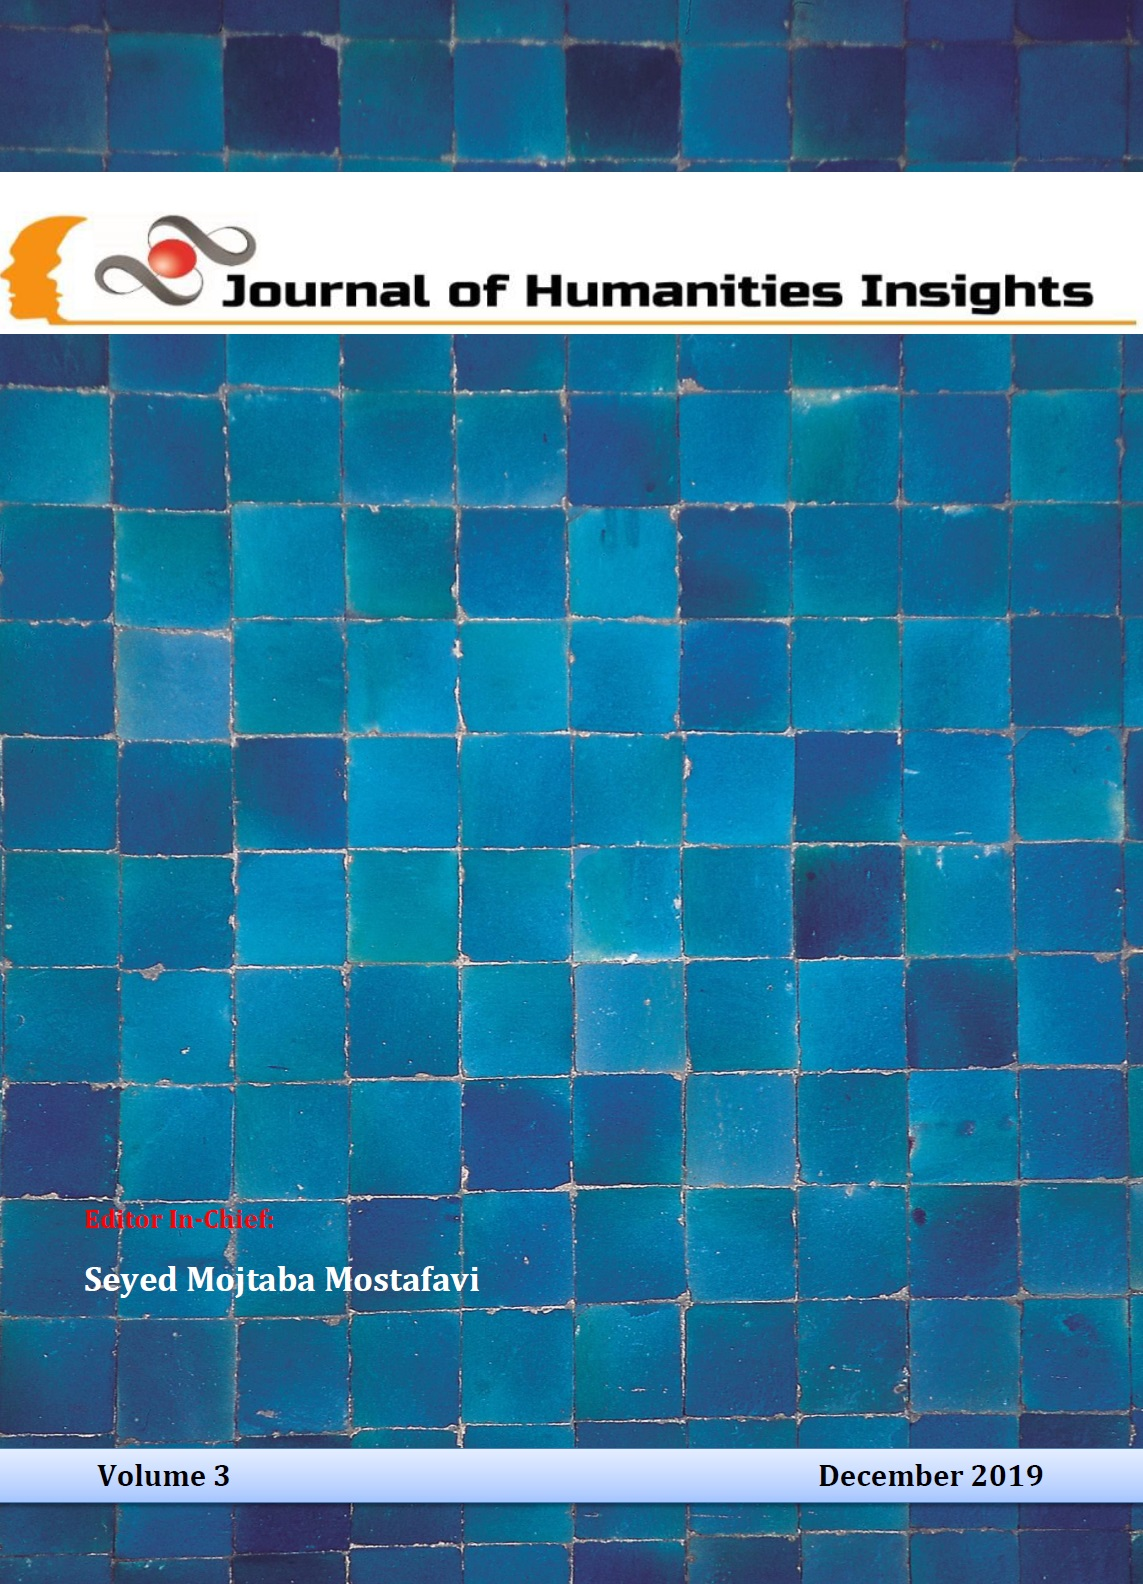 Journal of Humanities Insights